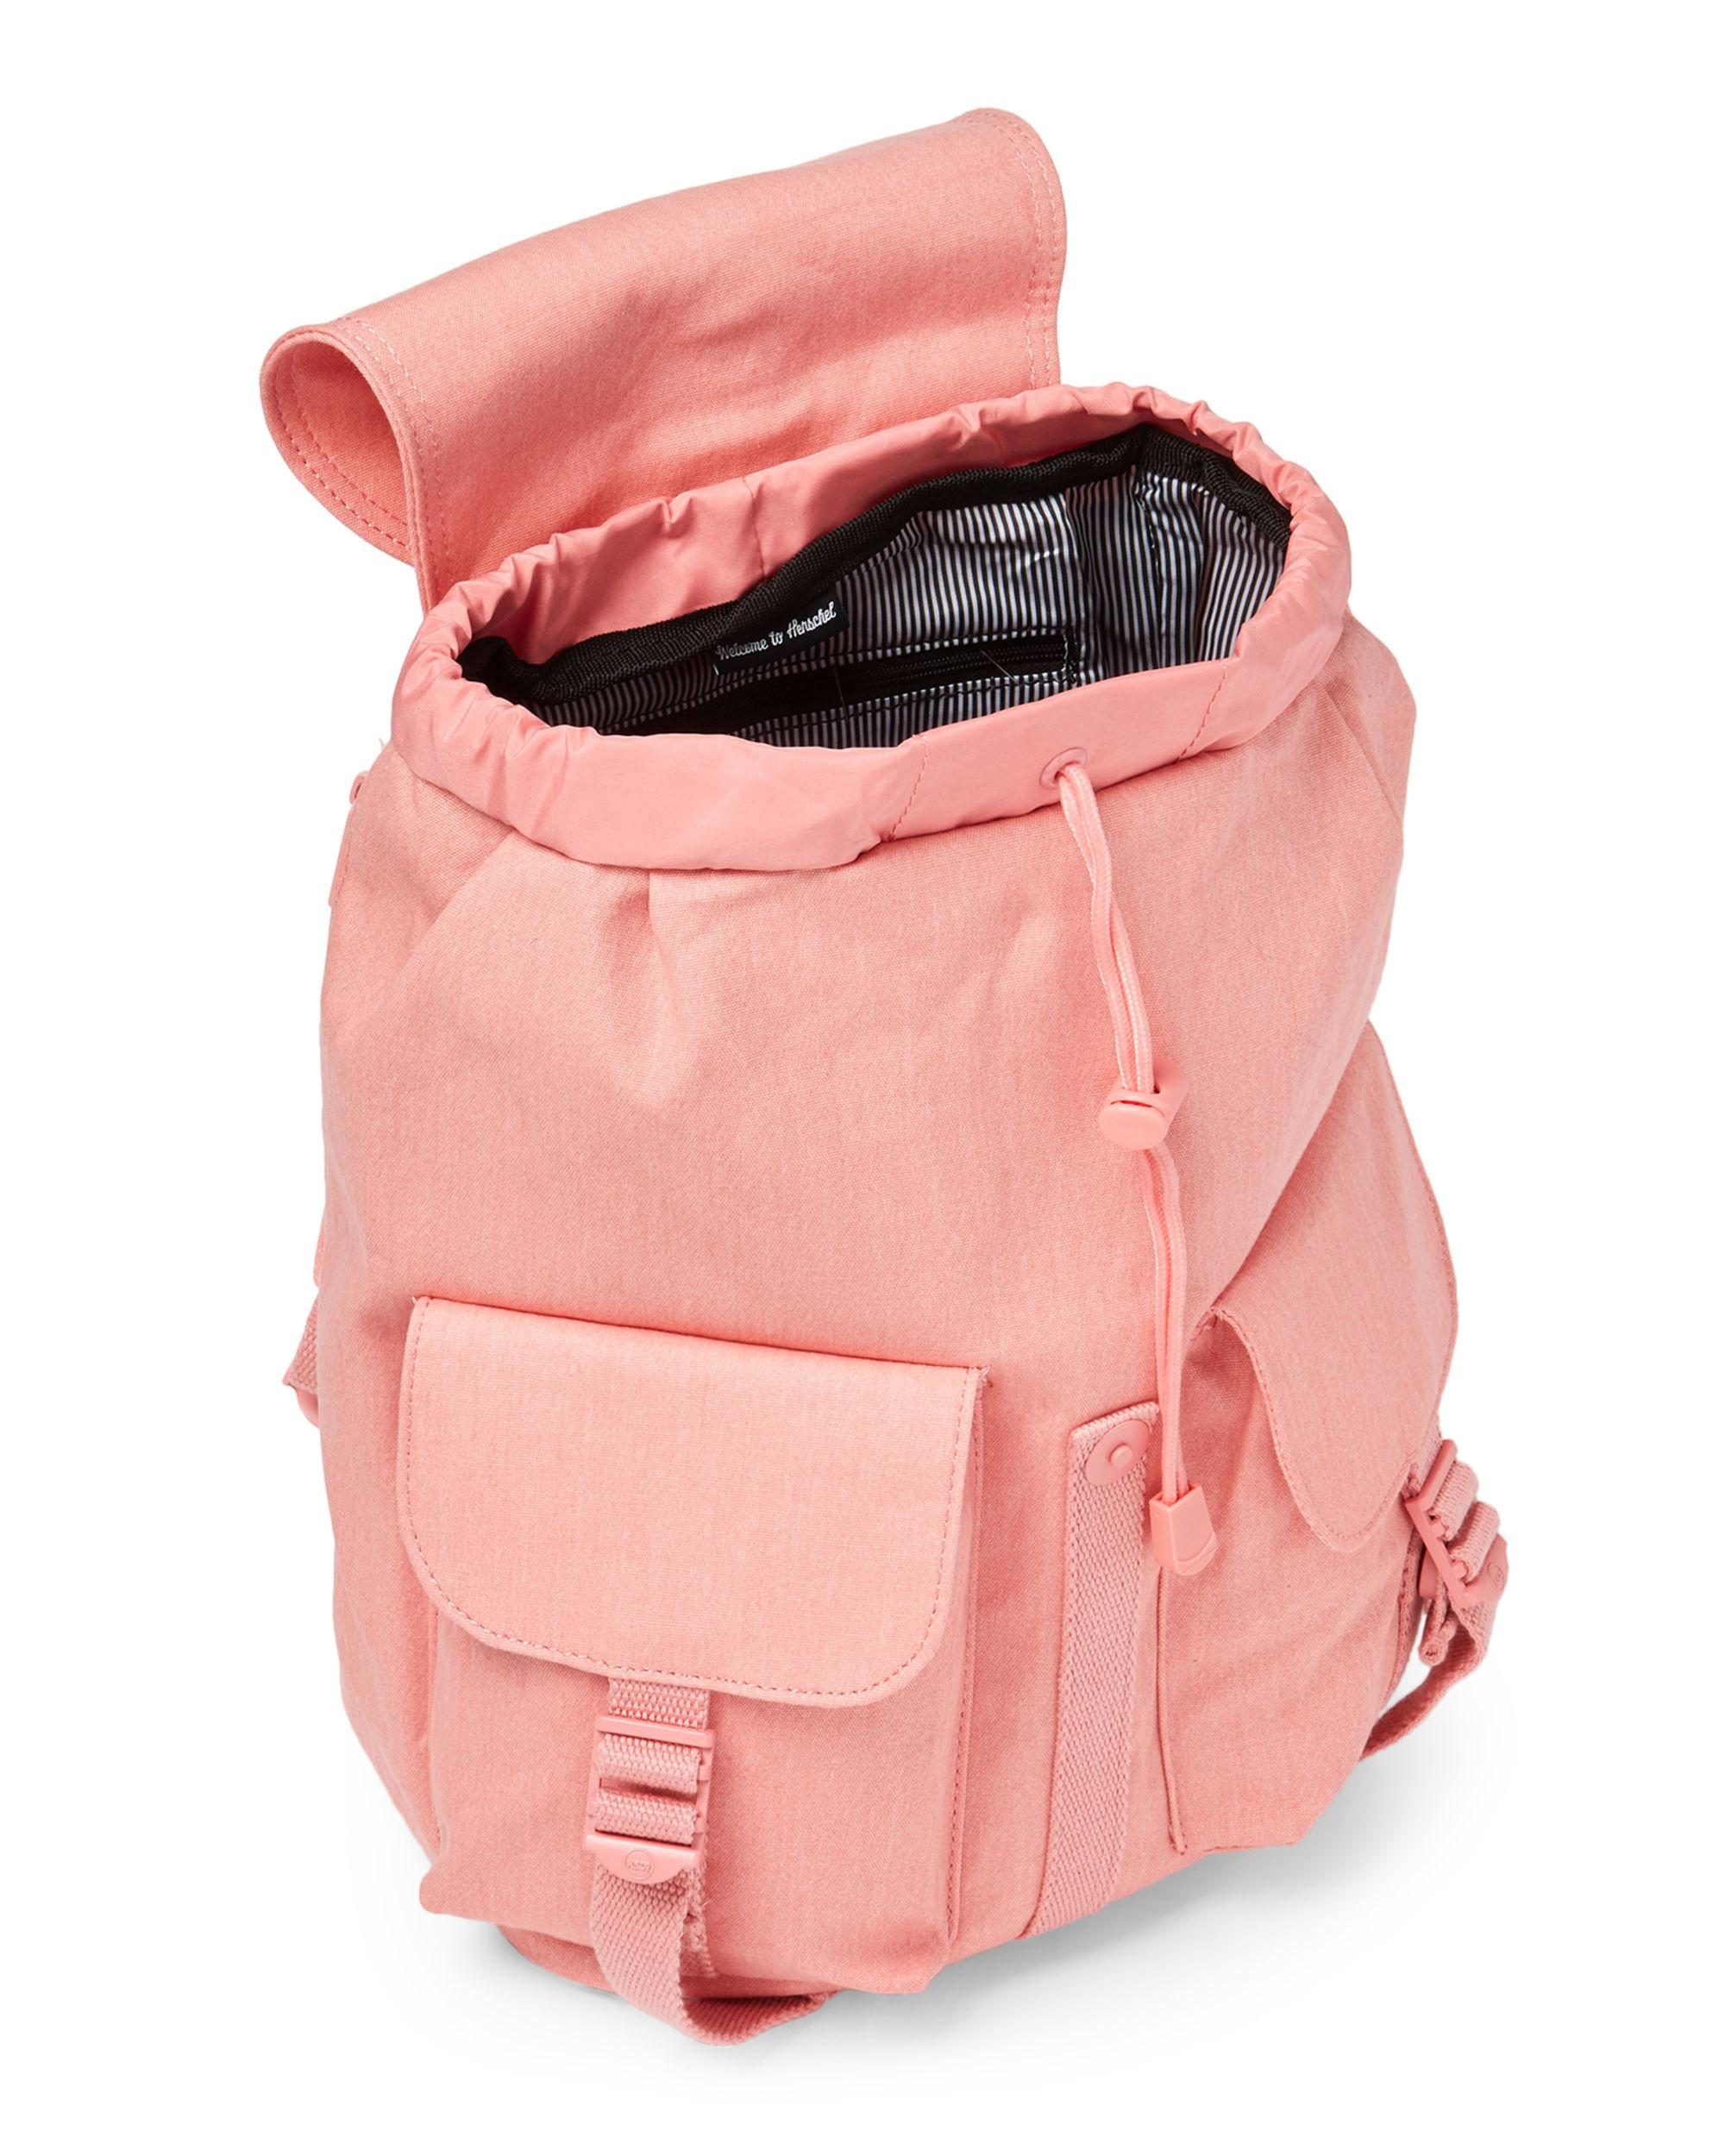 d701e1fde99 Lyst - Herschel Supply Co. Strawberry Dawson X-small Flap Backpack in Pink  for Men